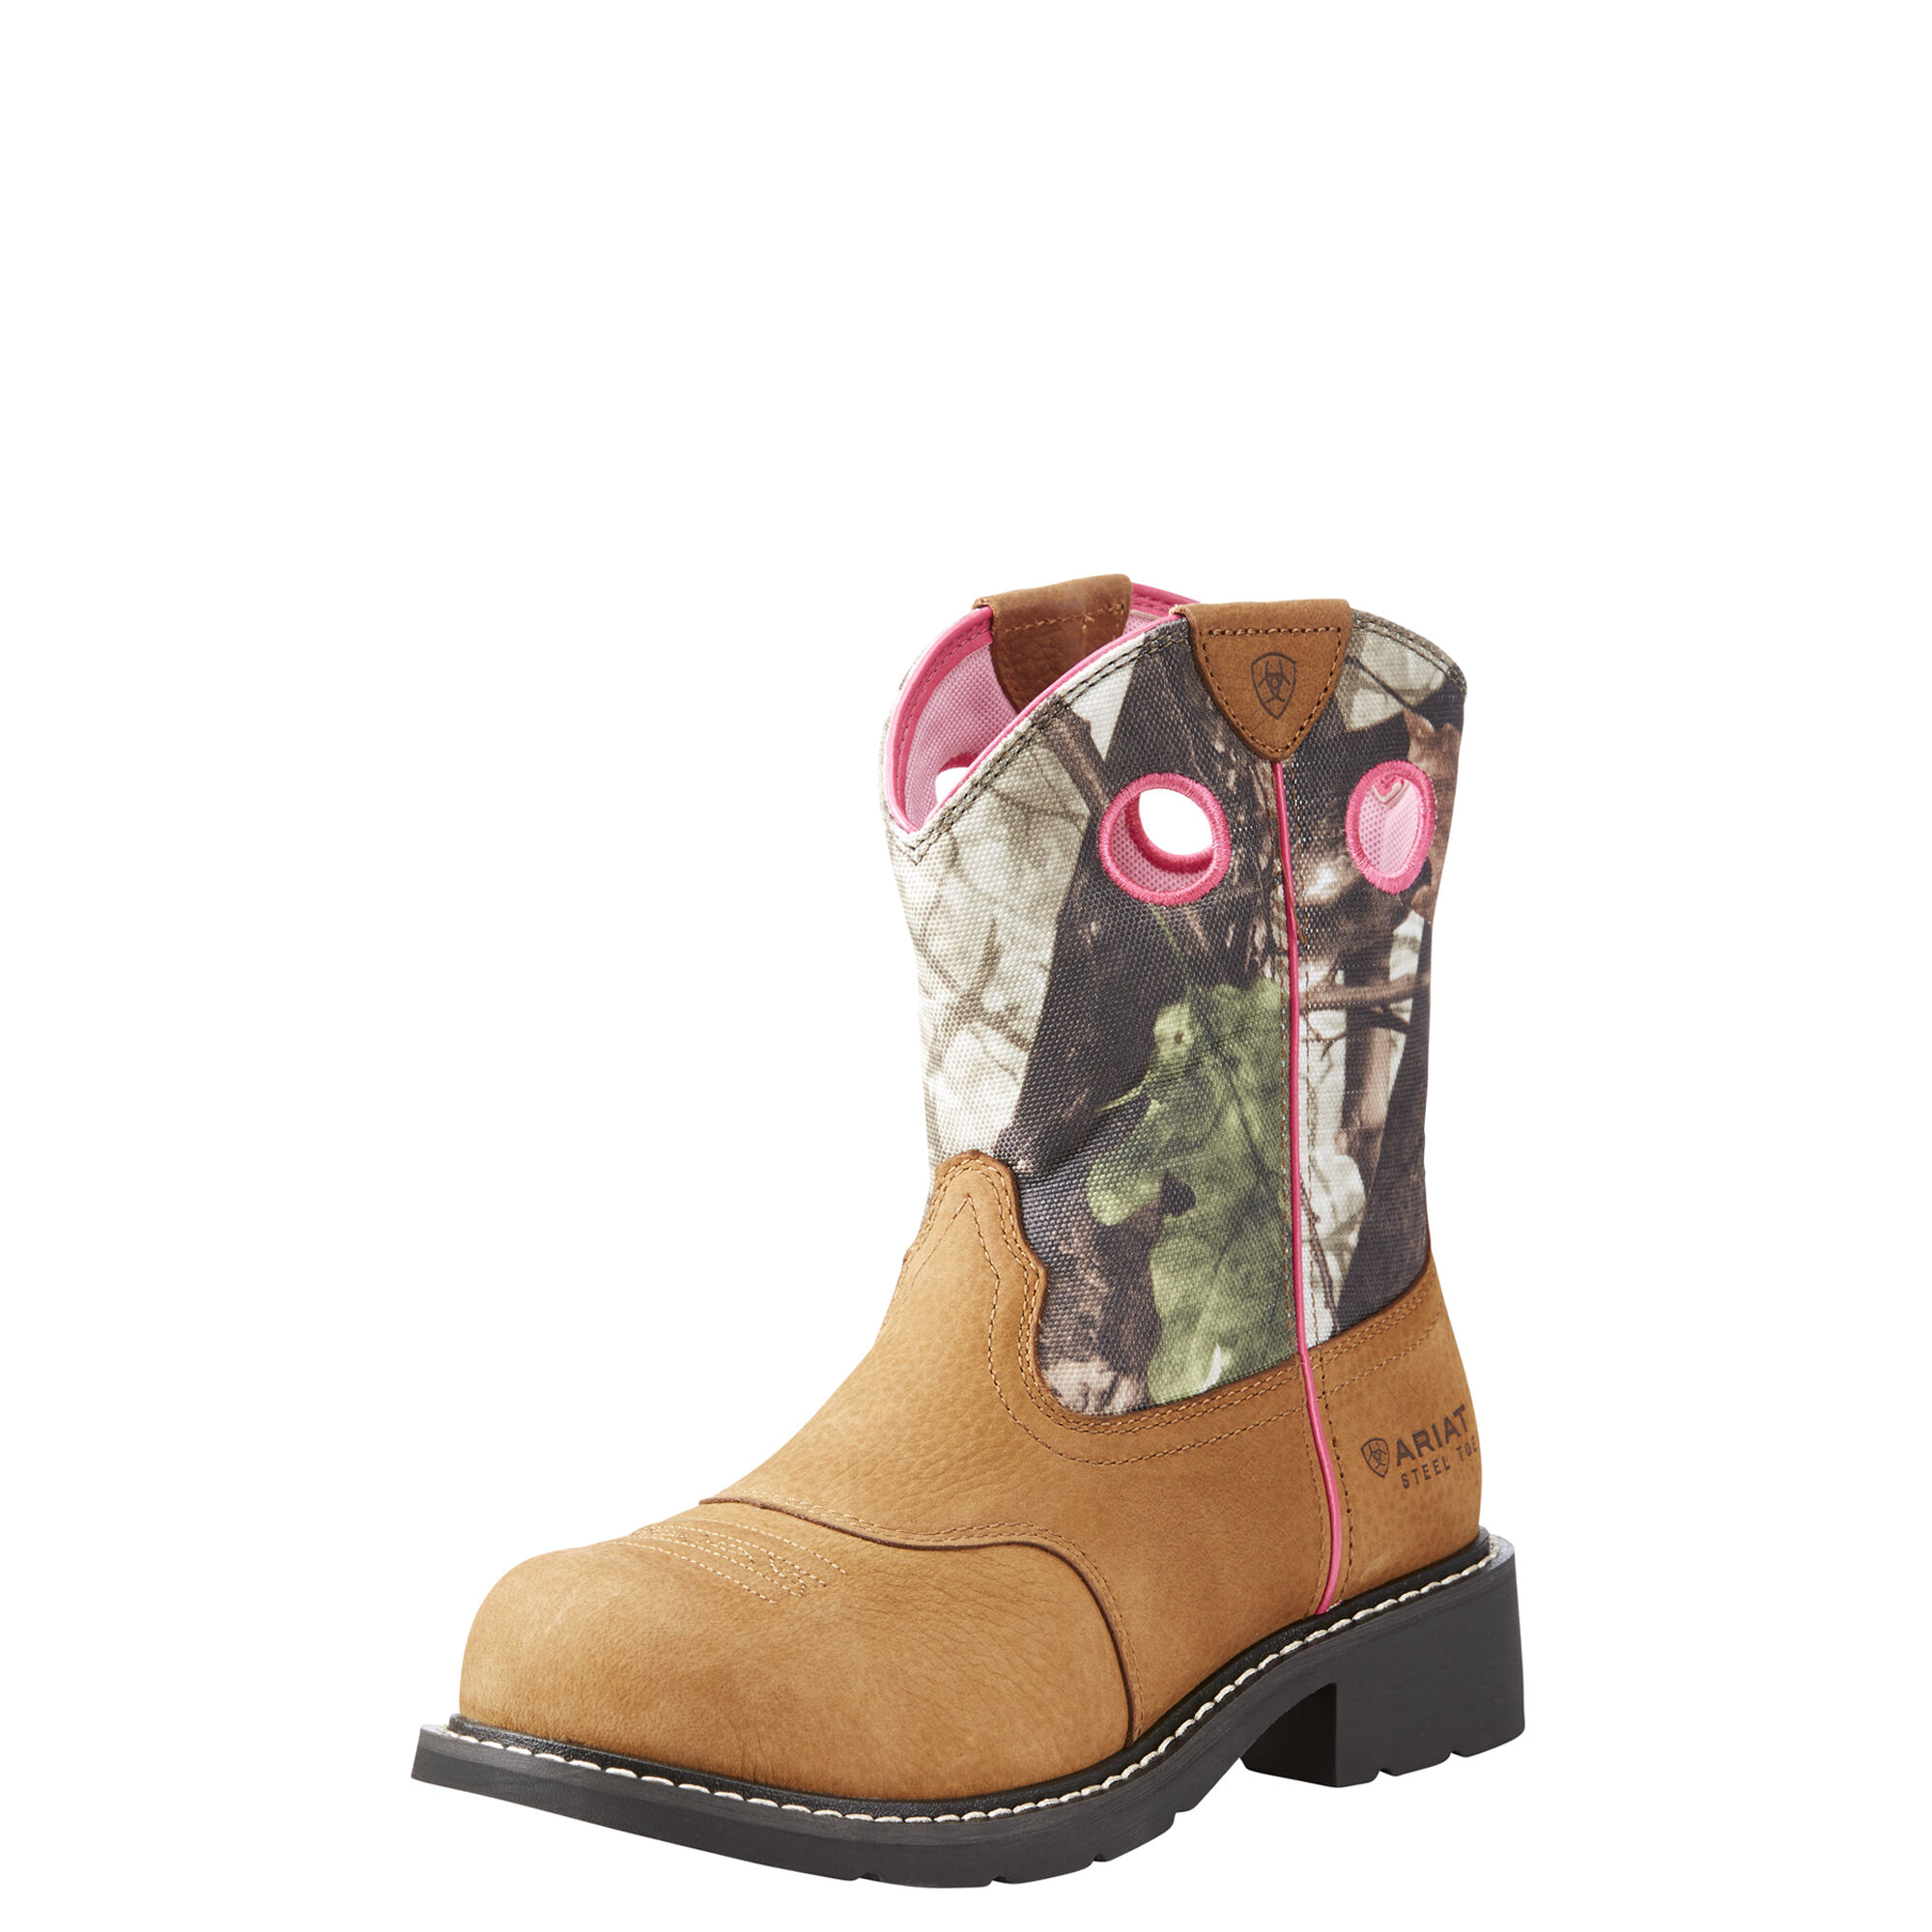 Fatbaby Cowgirl Steel Toe Work Boot